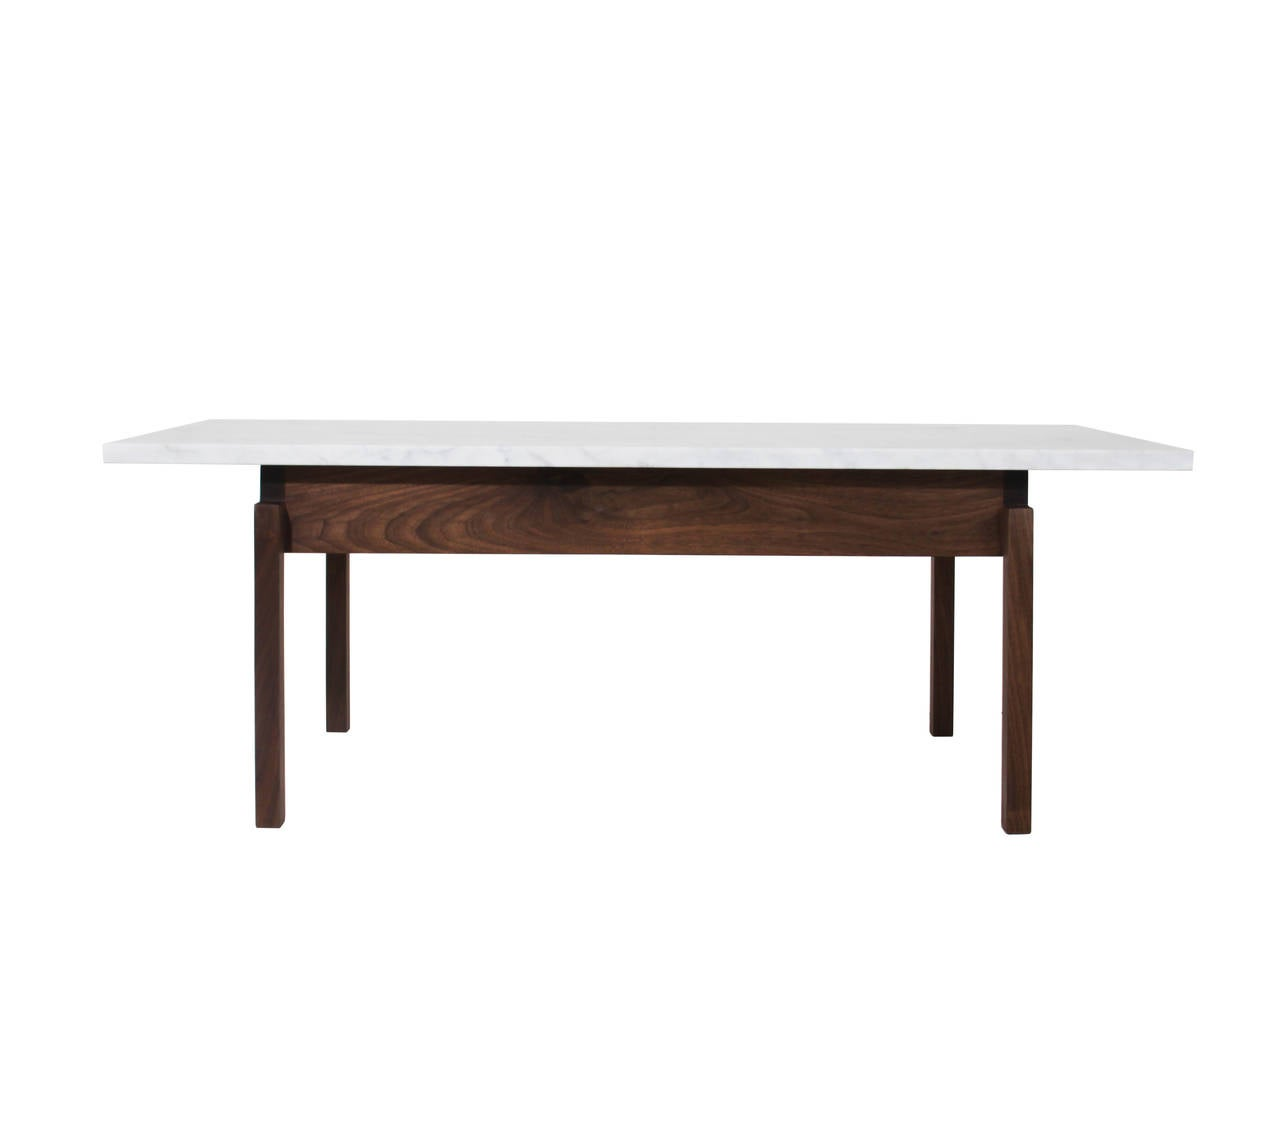 Walnut coffee table with carrara marble top by thomas hayes studio at 1stdibs Coffee tables with marble tops